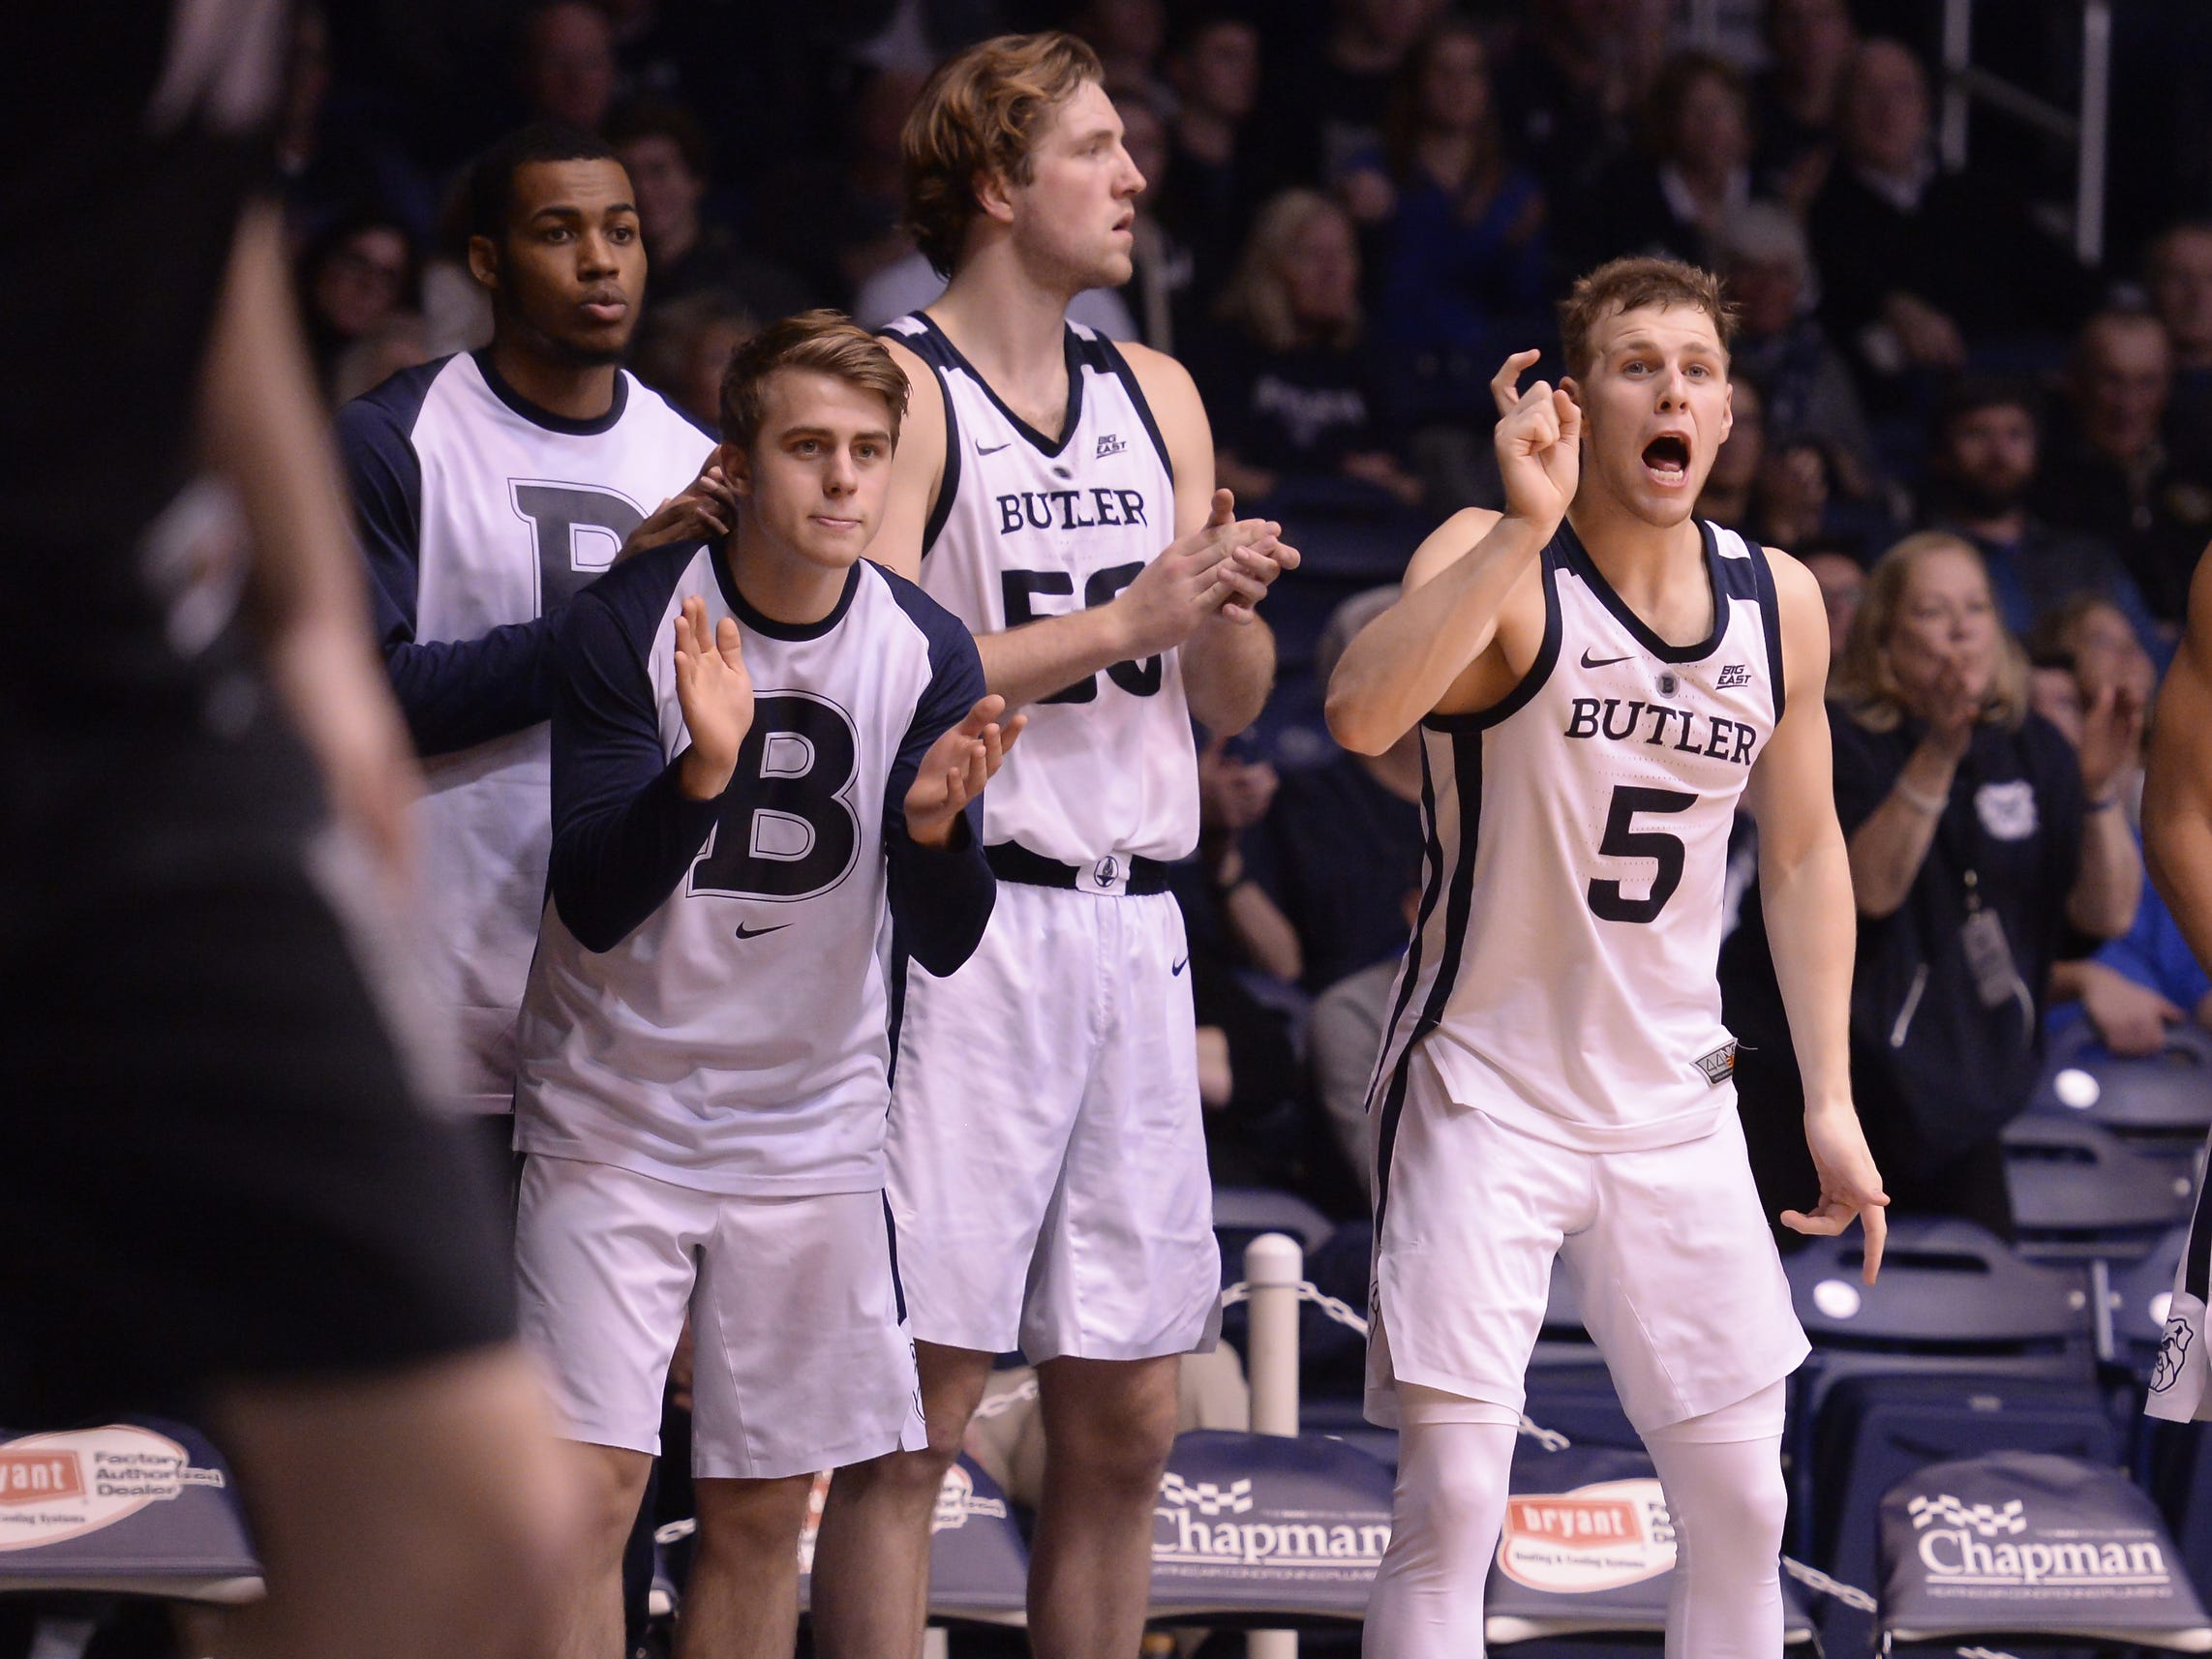 The Butler Bulldogs bench cheer on their team during the second half of game action between Butler University and Georgetown University, at Hinkle Fieldhouse in Indianapolis, Indiana on Wednesday, Jan. 2, 2019. The Butler Bulldogs fell to the Georgetown Hoyas 84-76.